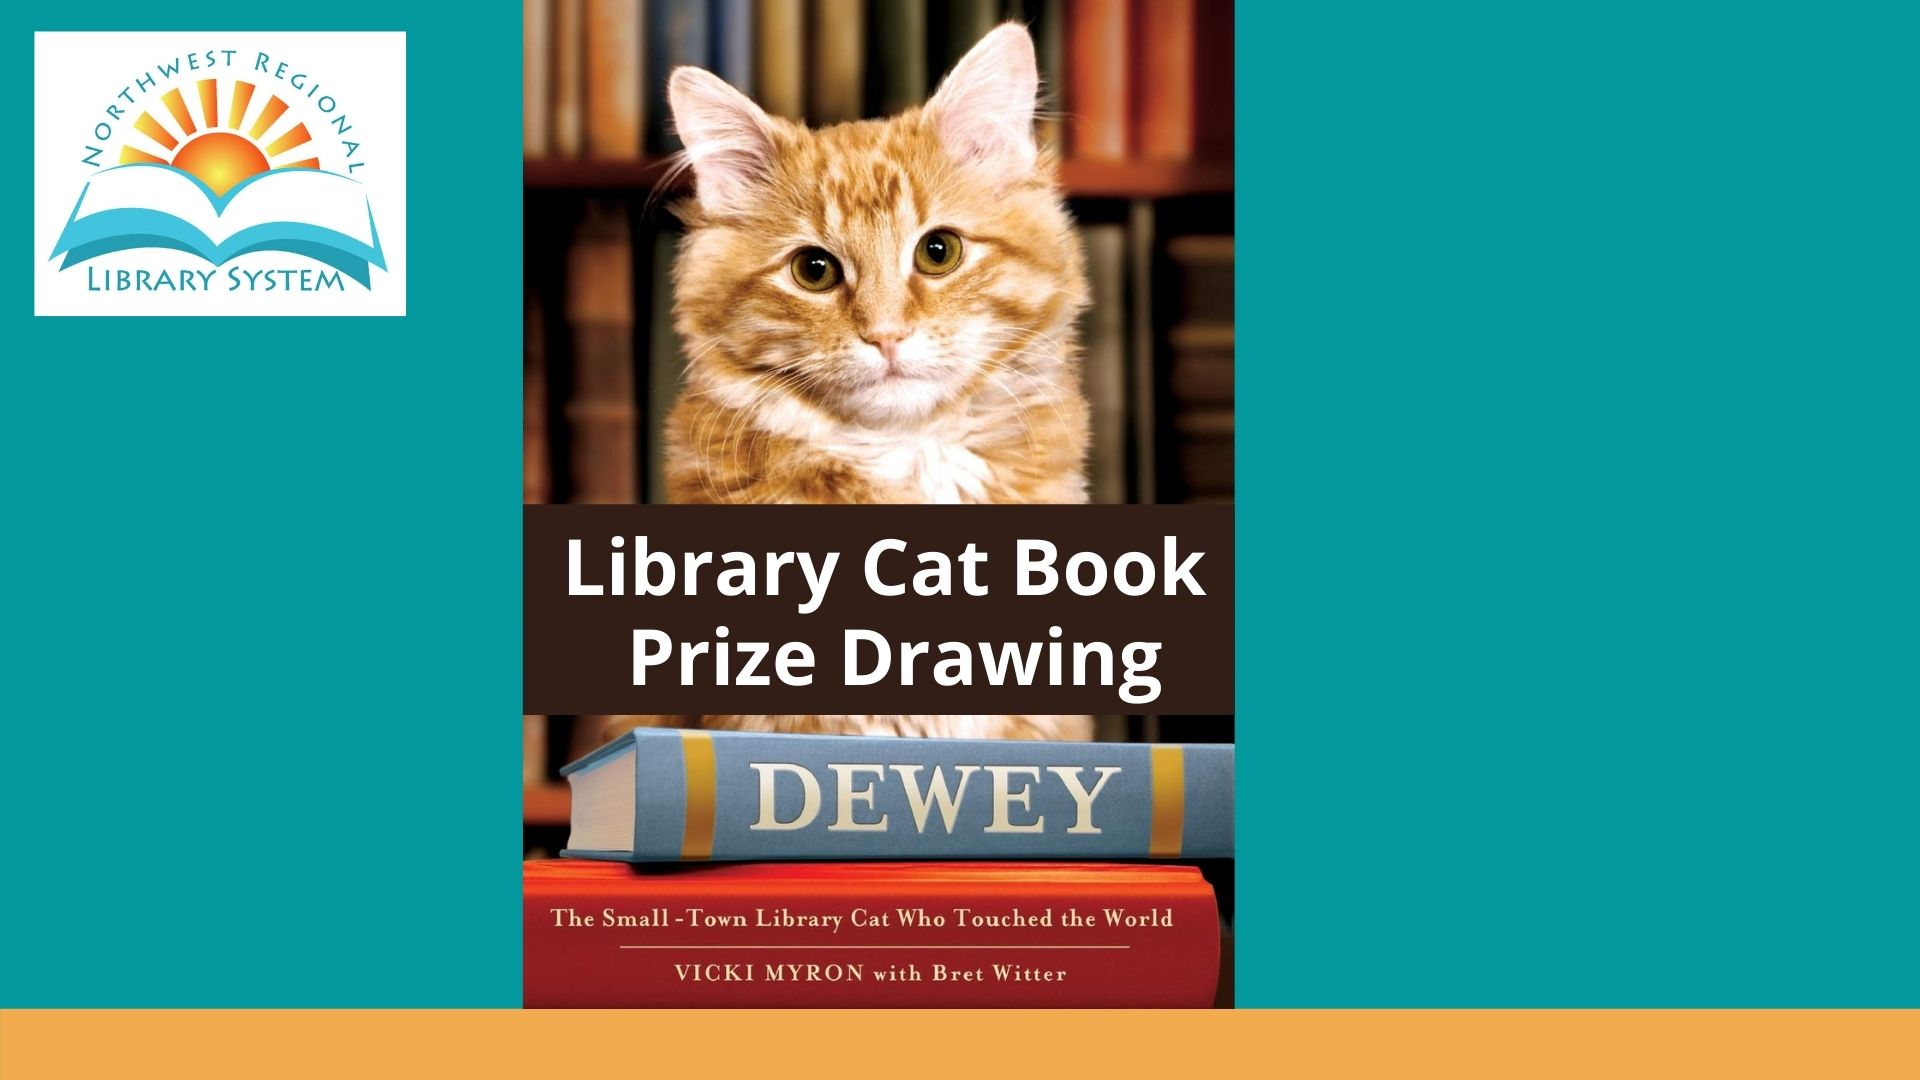 Library Cat Book Prize Drawing